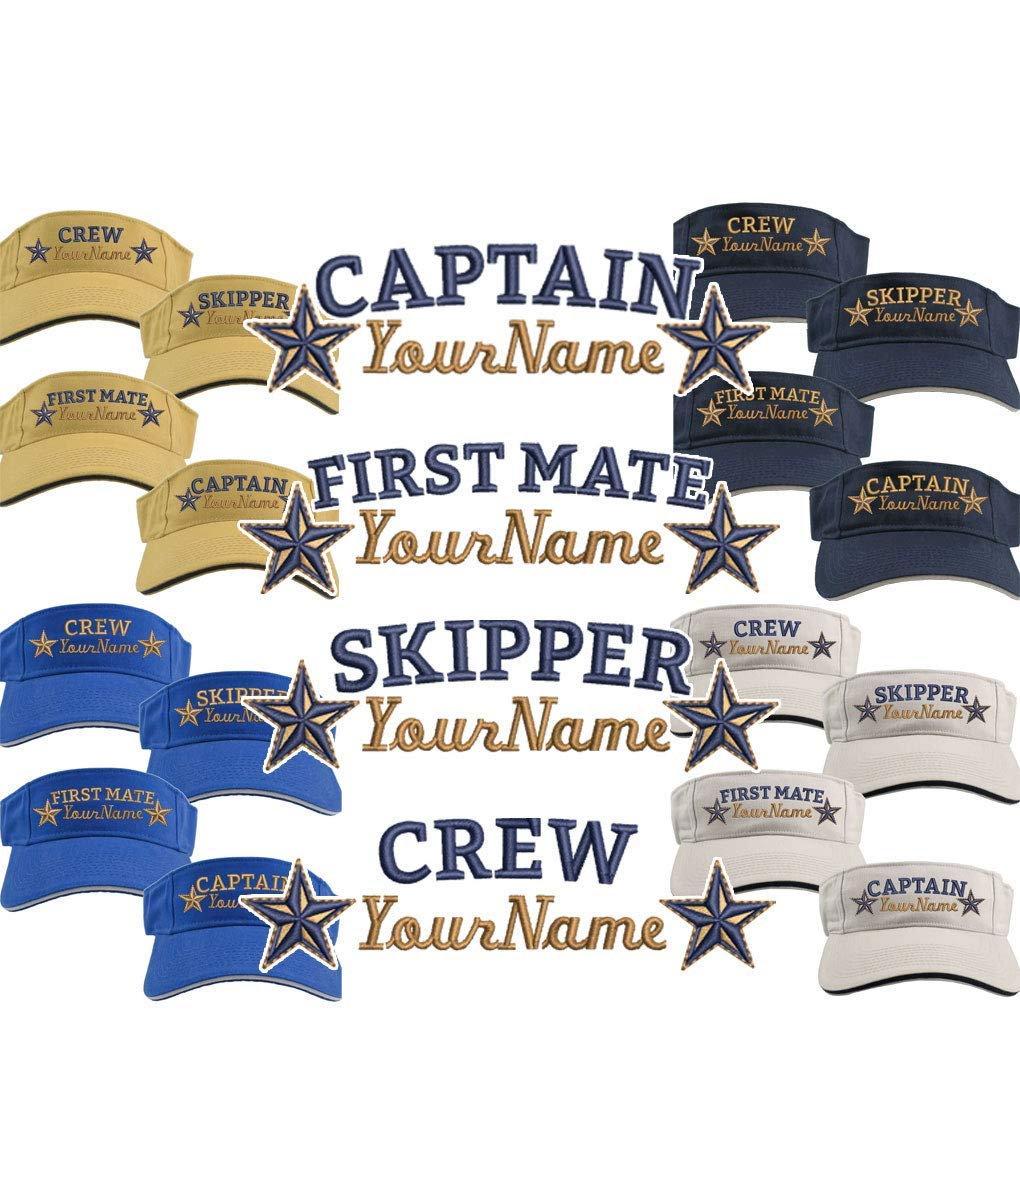 7752577a4 Custom Personalized Your Name on Captain First Mate Skipper Crew ...